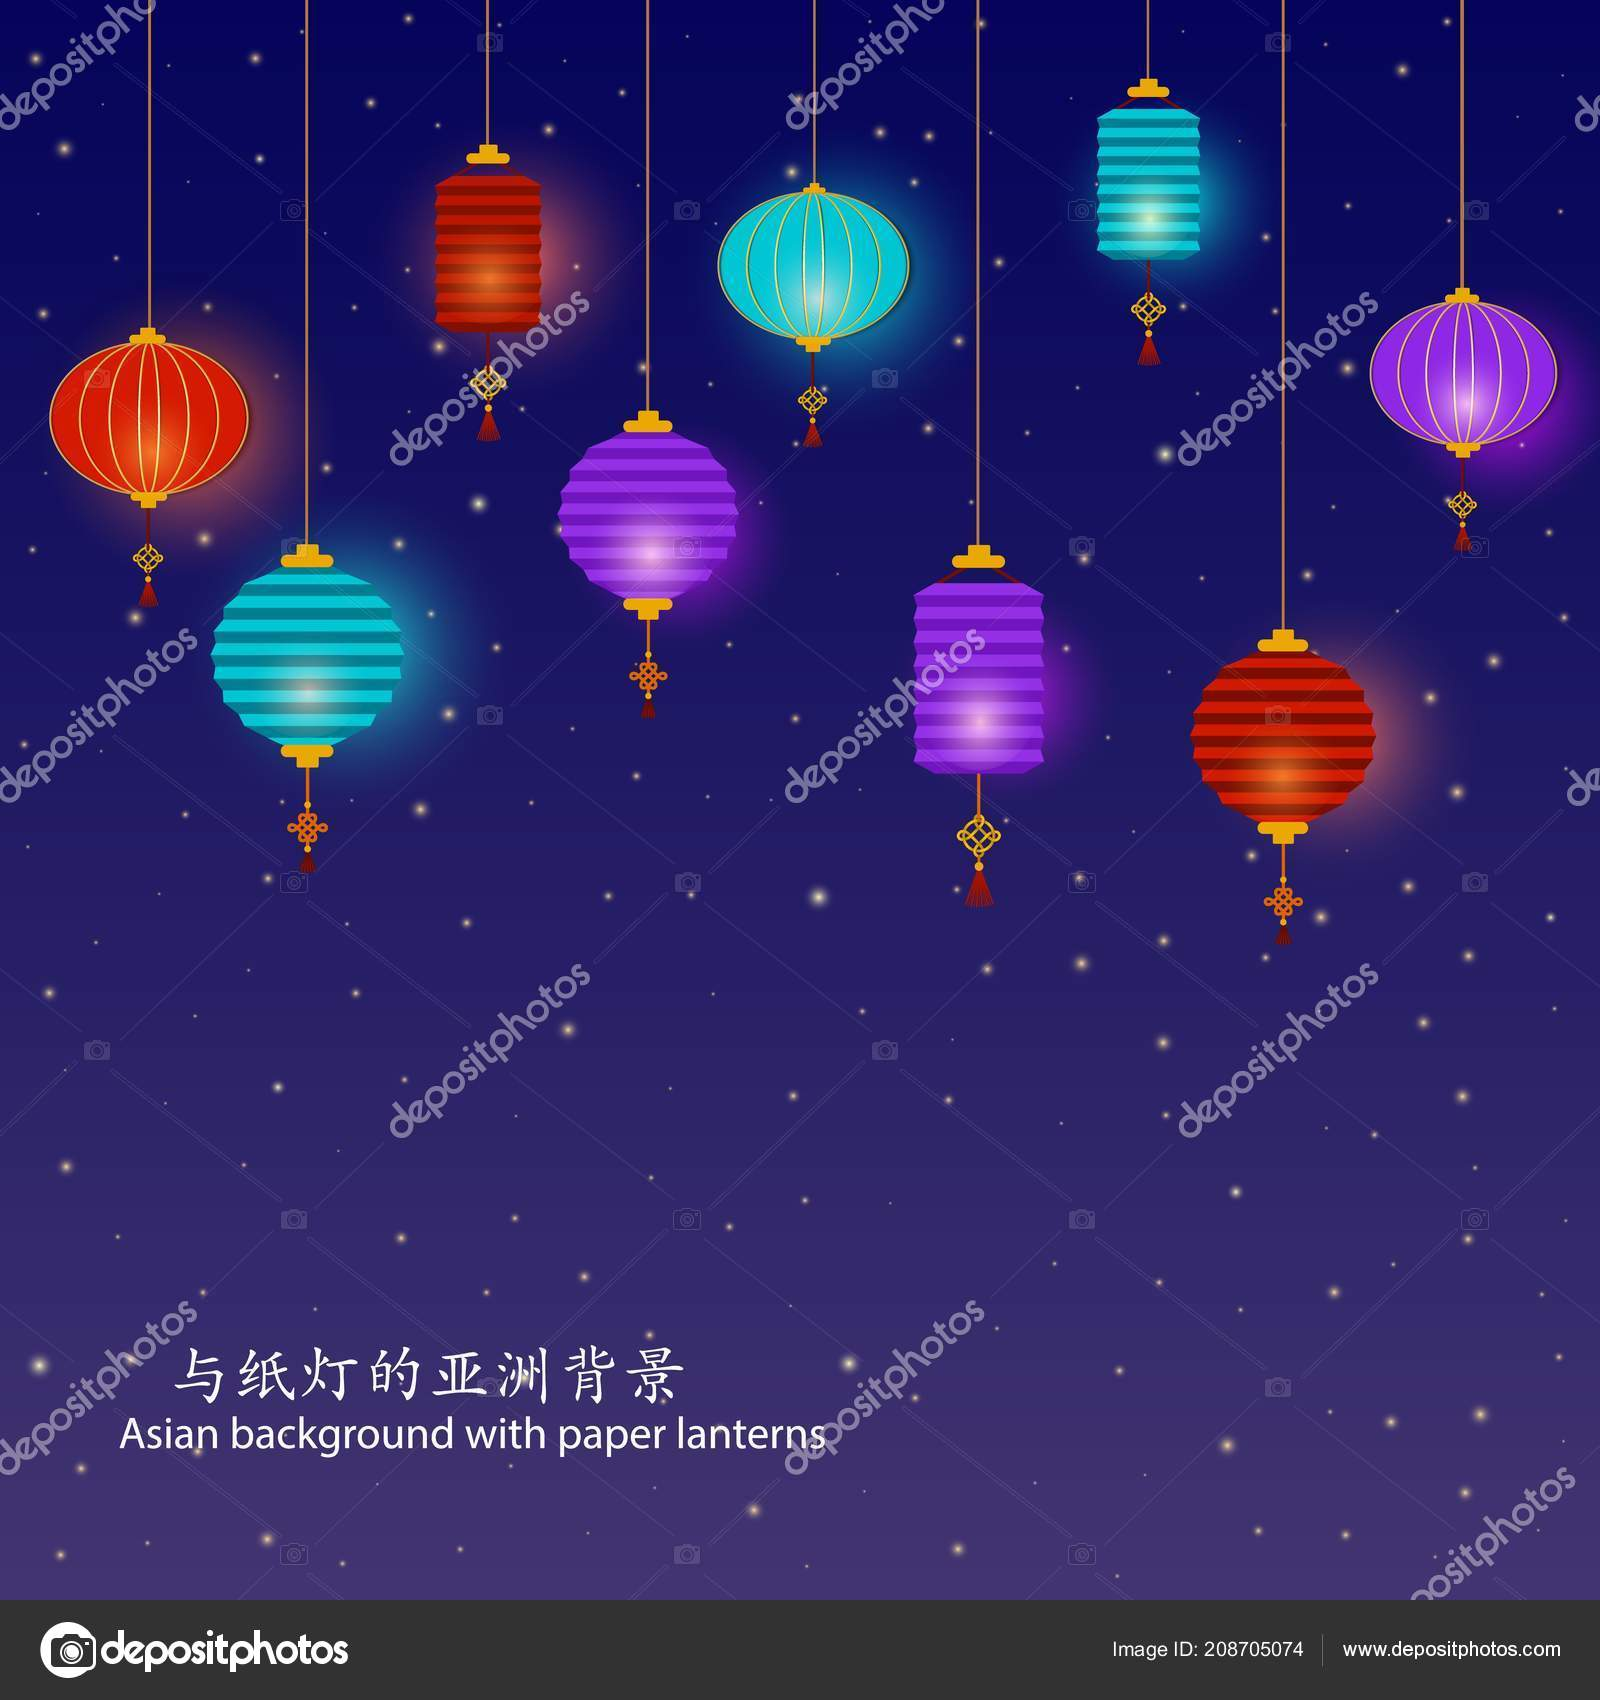 asian starry night background with paper lanterns template for mid autumn festival design chuseok greeting card chinese new year poster